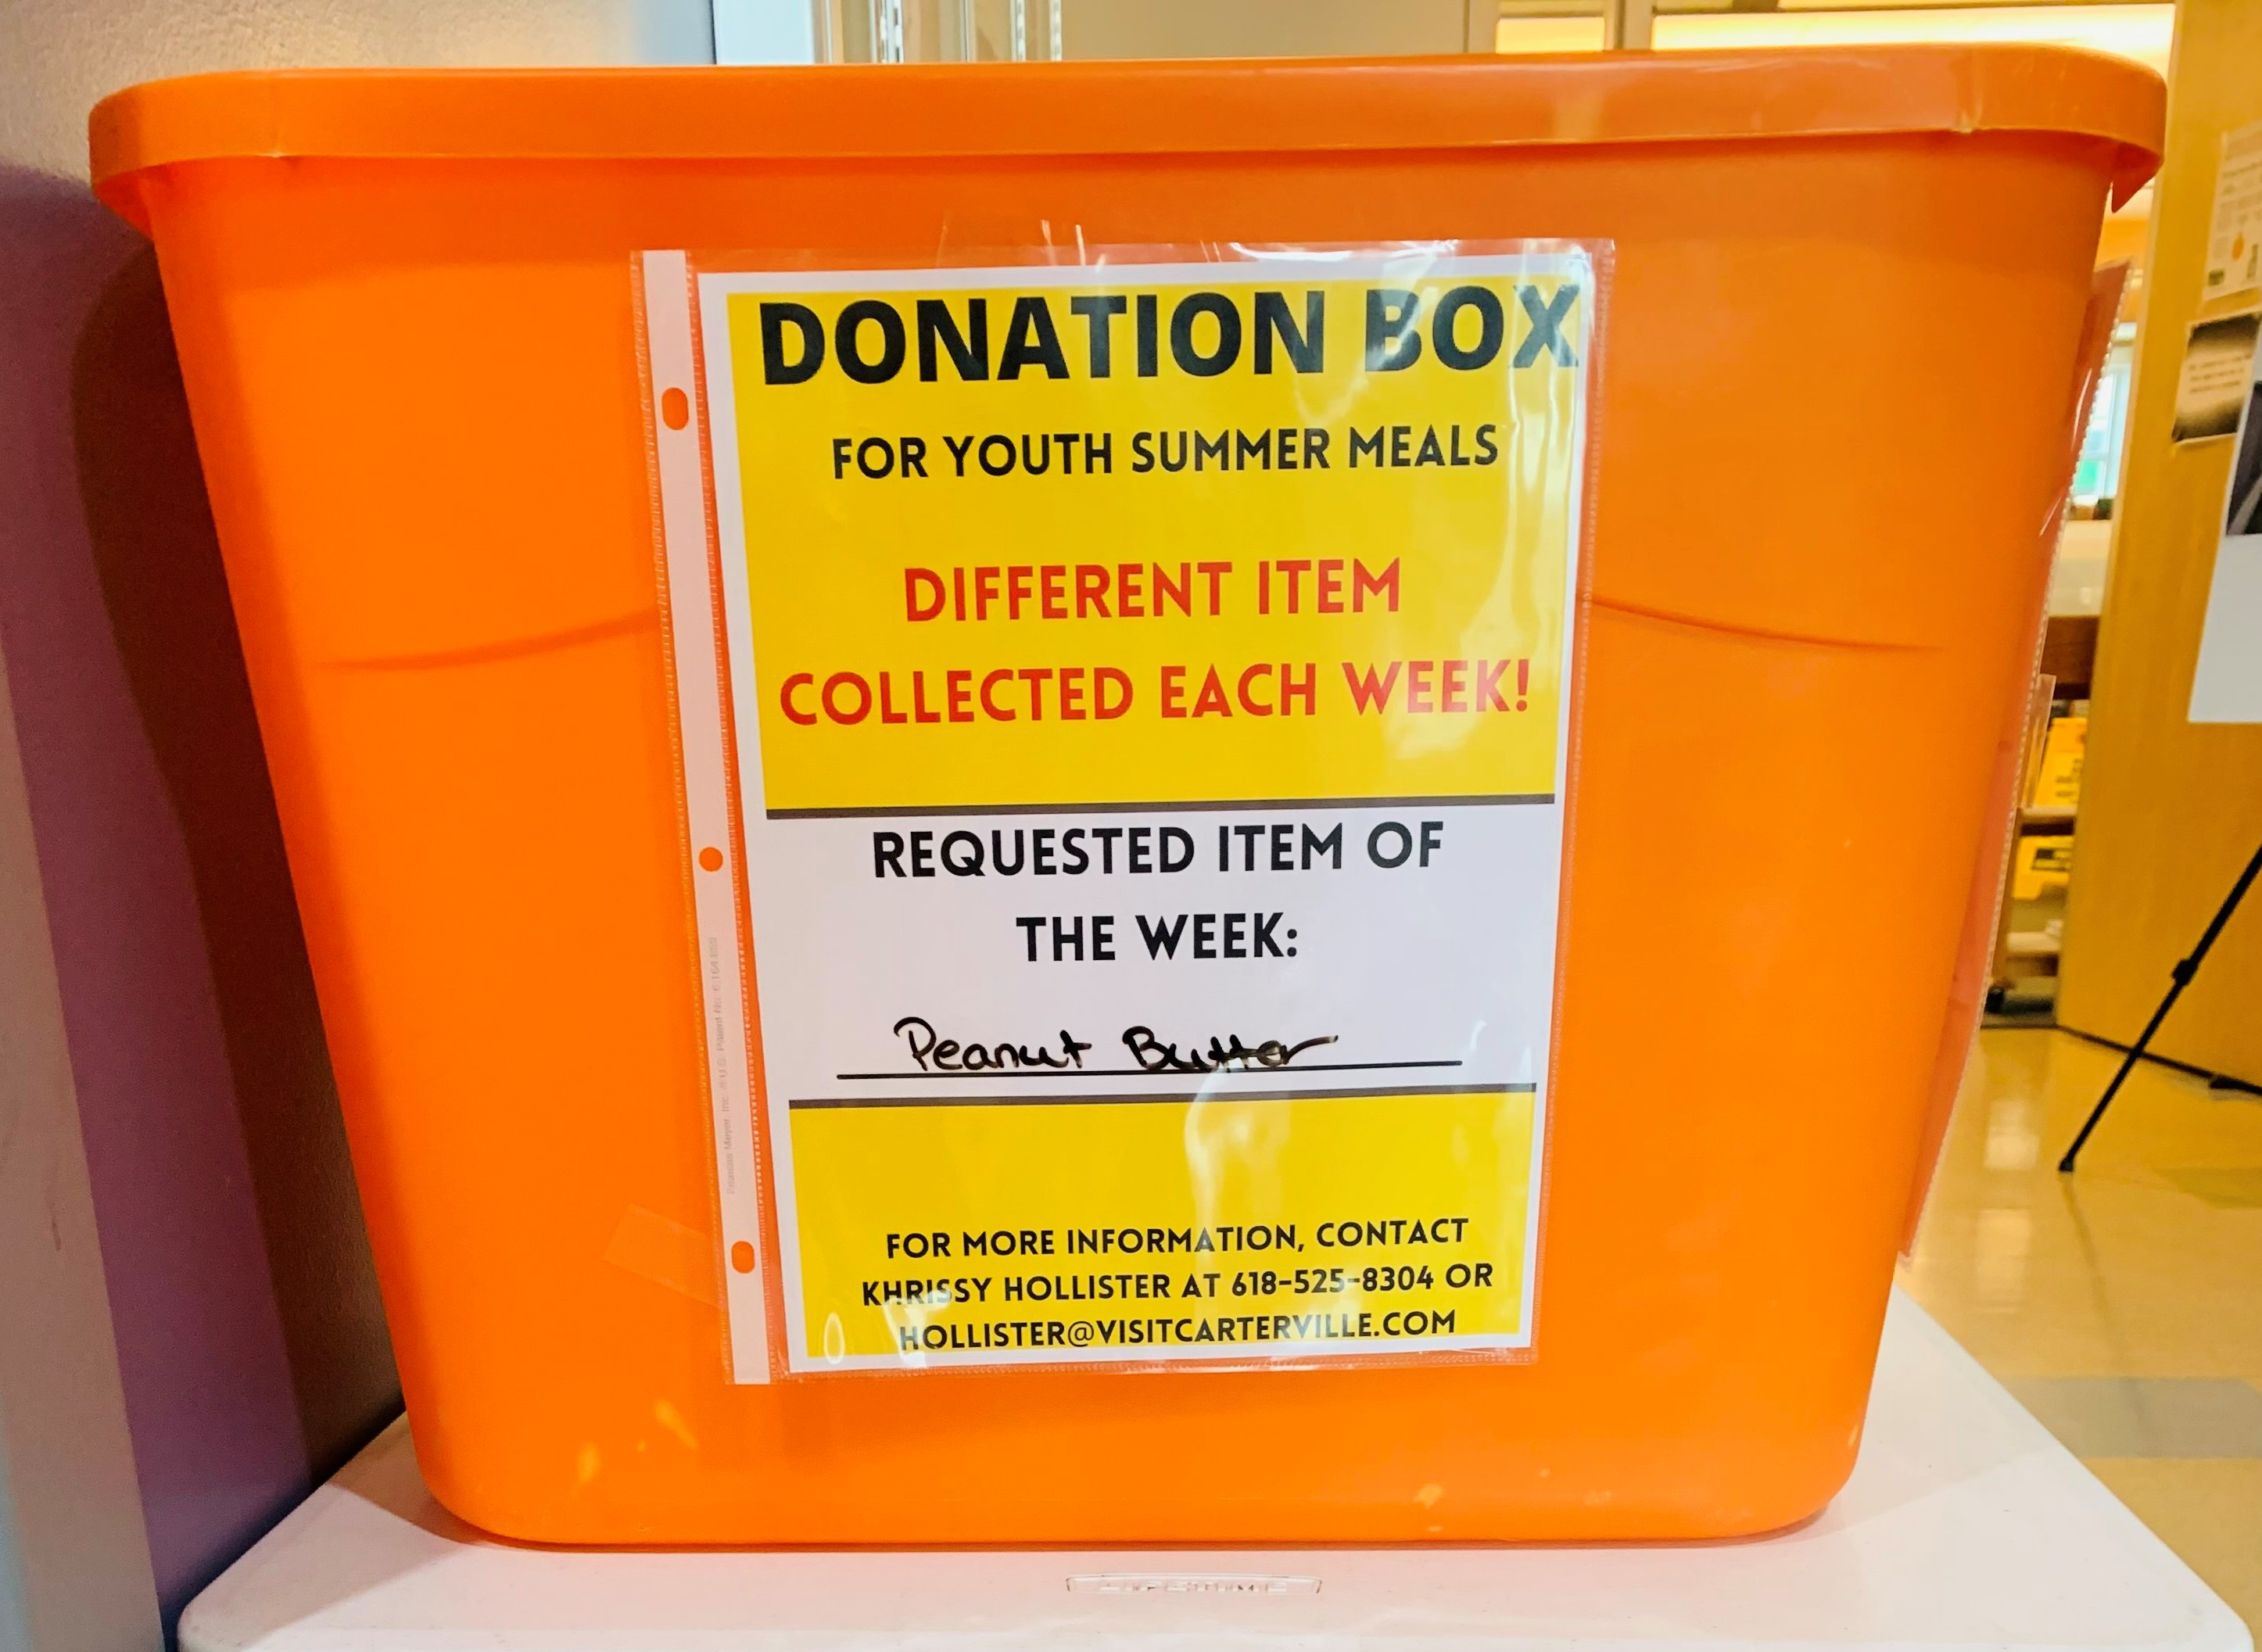 Photograph of bright orange donation box. Text on box reads: Donation Box for Youth Summer Meals